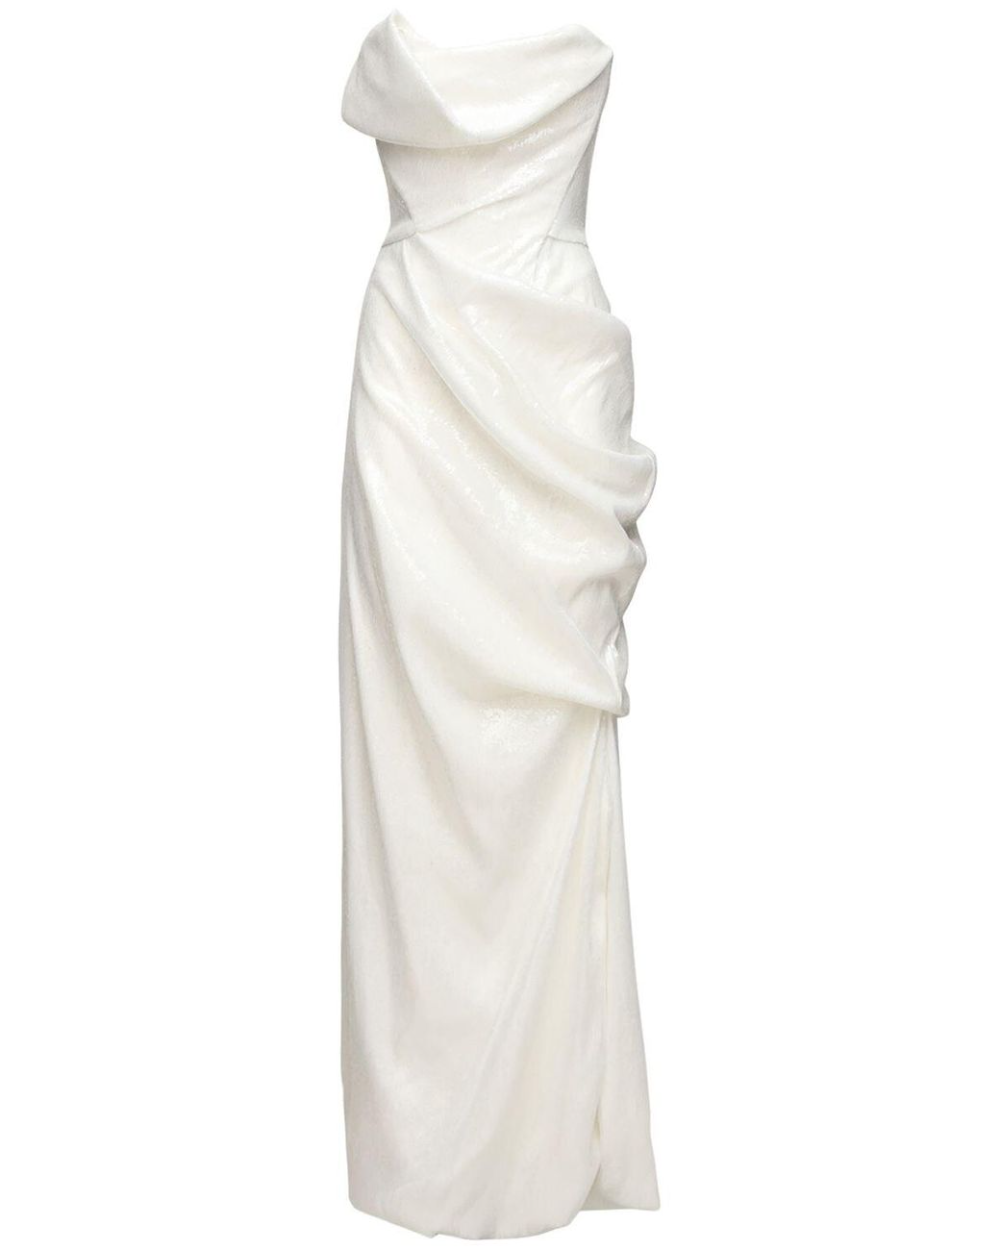 Vivienne Westwood White Strapless Sequined Dress I 2021 [ 1250 x 1000 Pixel ]